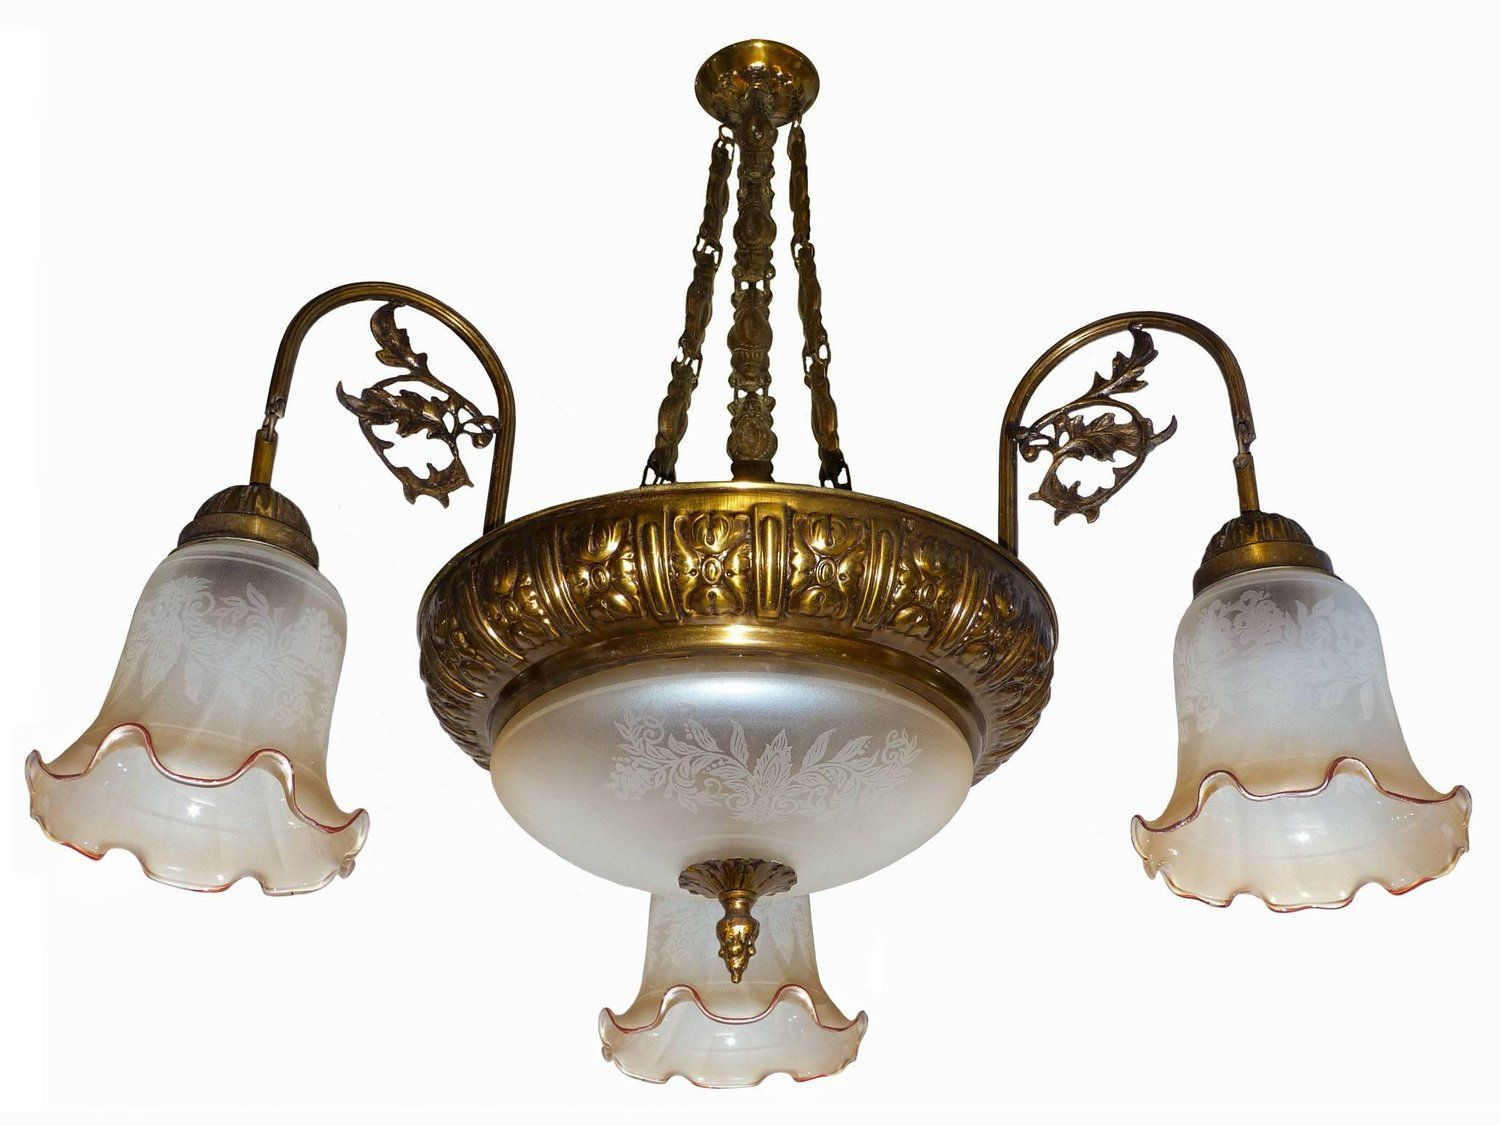 French art deco or art nouveau with five light and etched glass french art deco or art nouveau with five light and etched glass chandelier mozeypictures Image collections